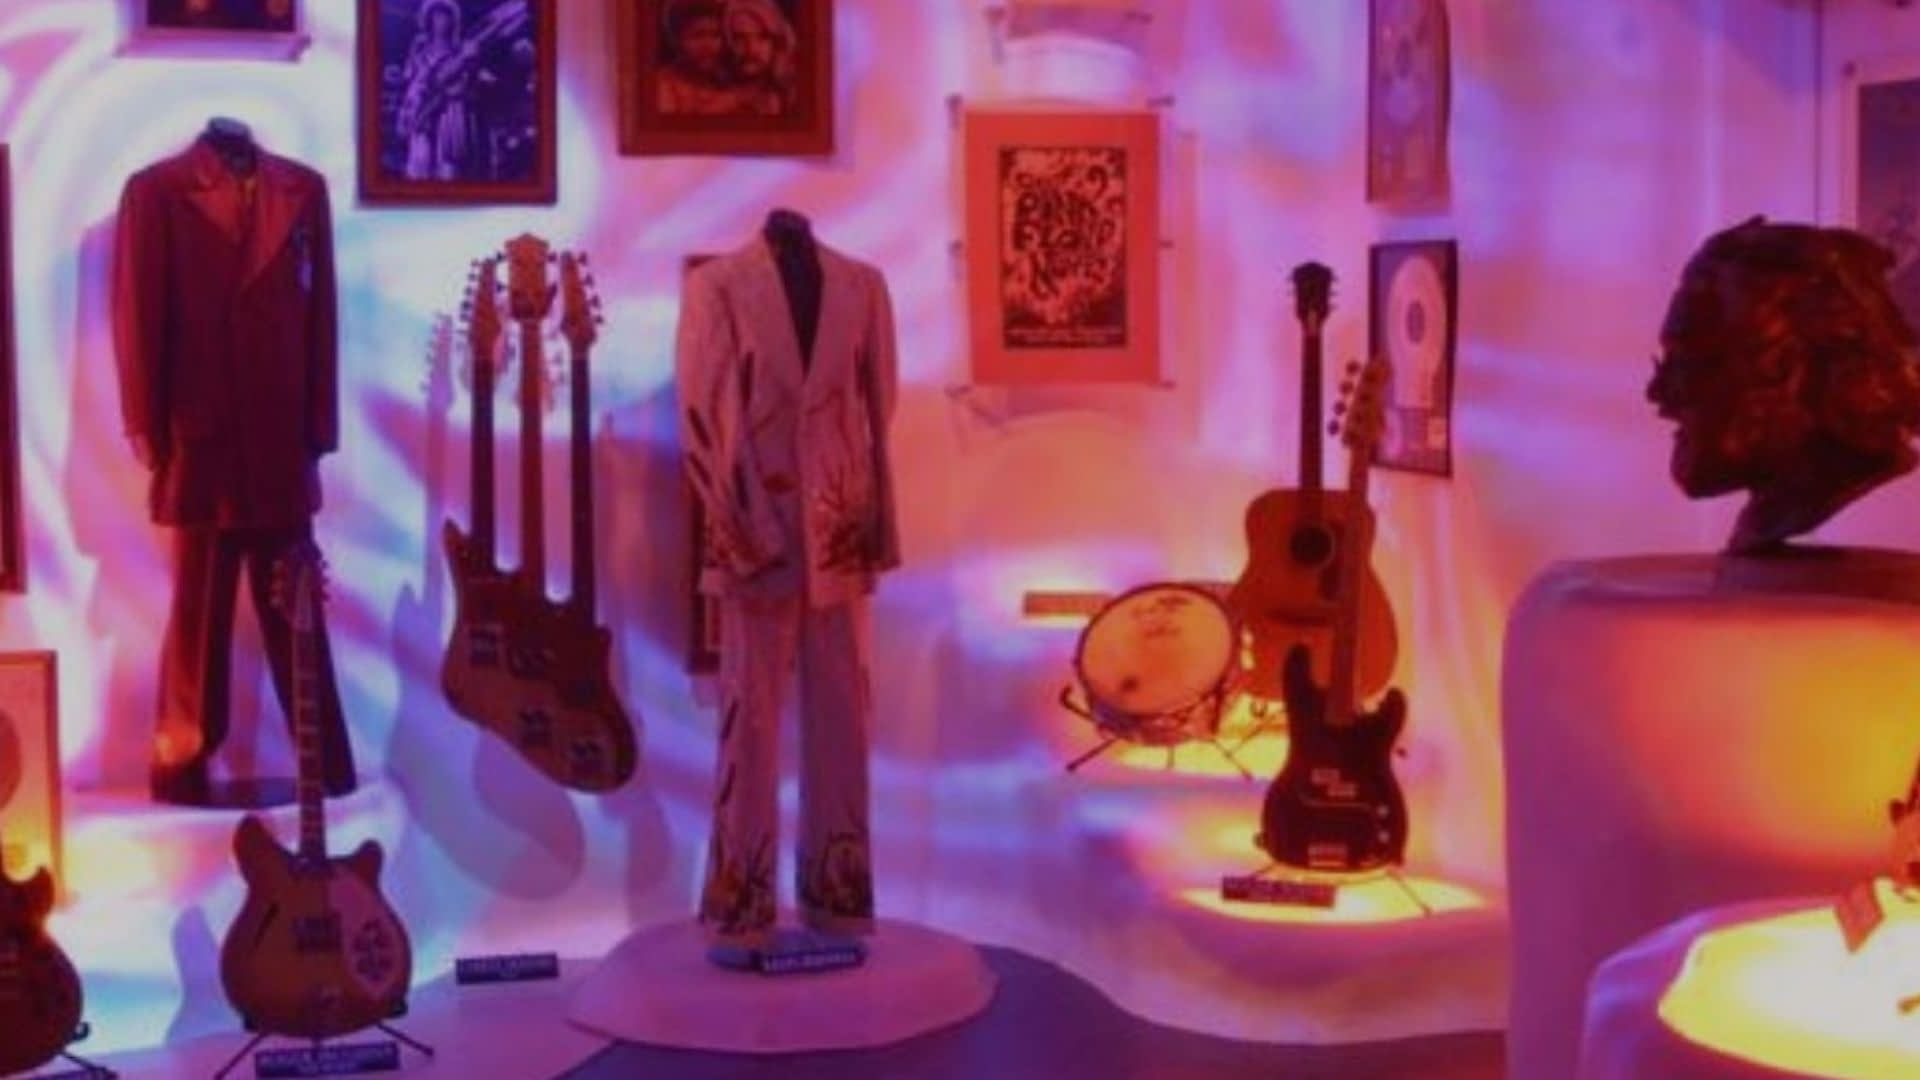 Hard Rock Vault's Elvis room